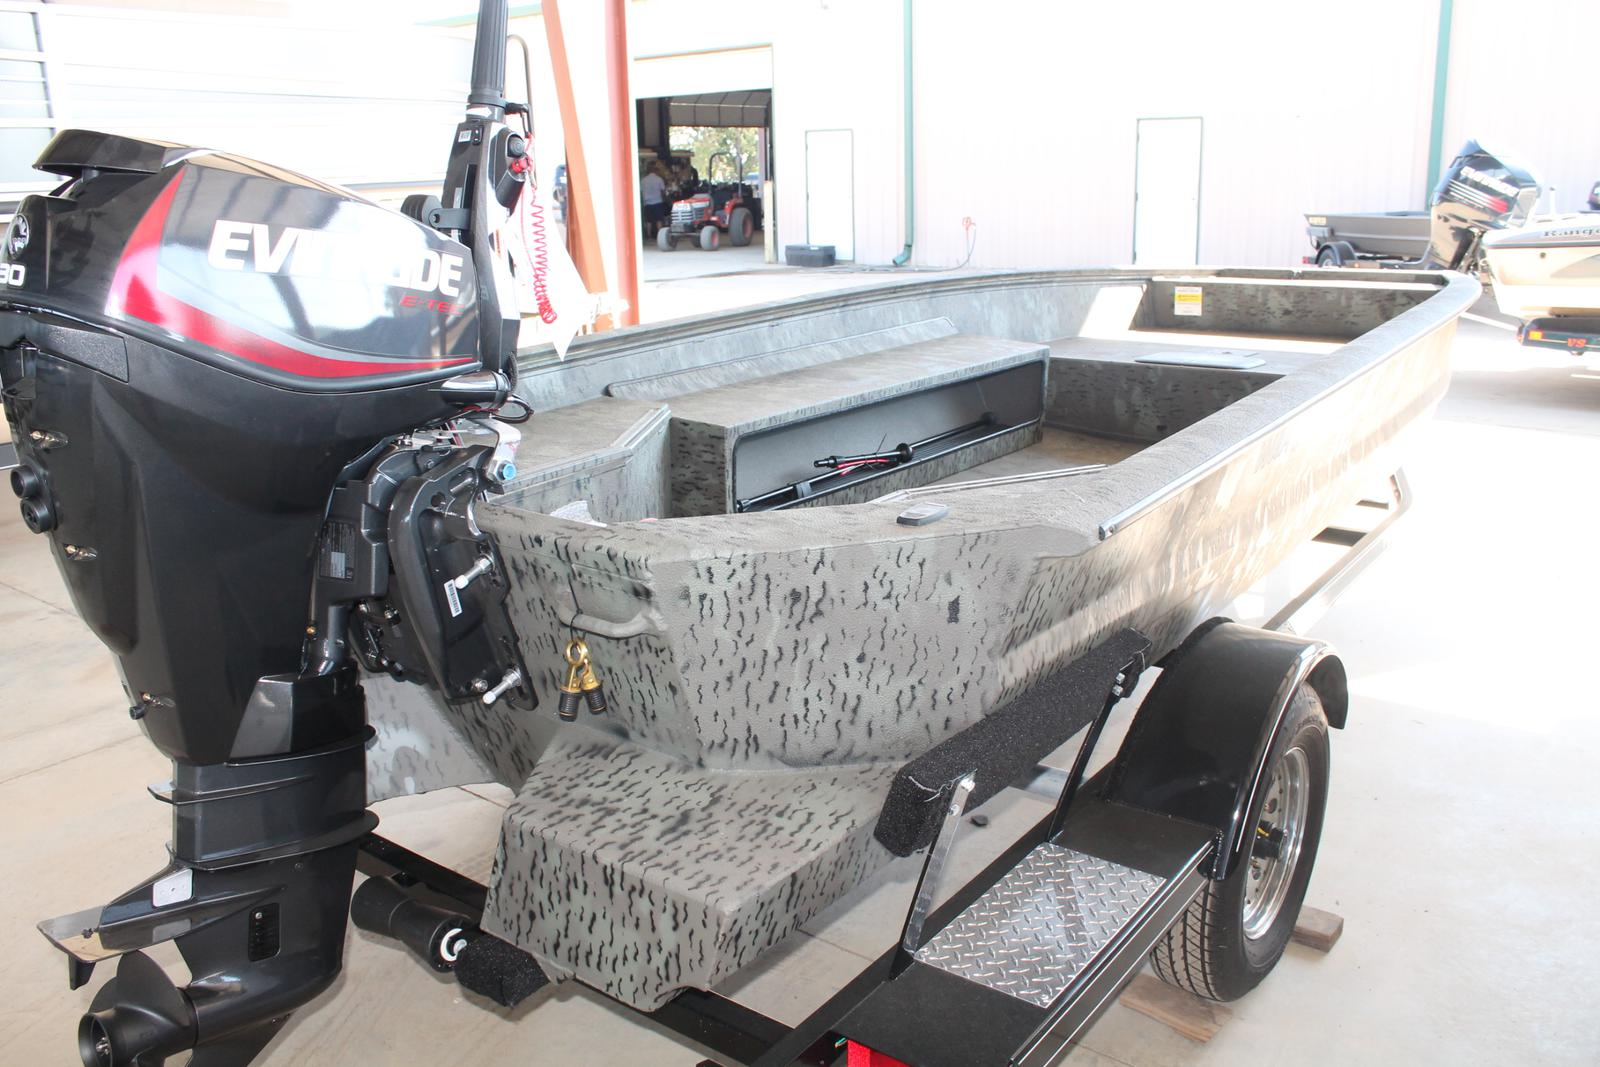 2018 War Eagle 750 Gladiator For Sale In Fort Smith Ar Barling As Well Boat Trailers On Trailer Wiring Img 5308